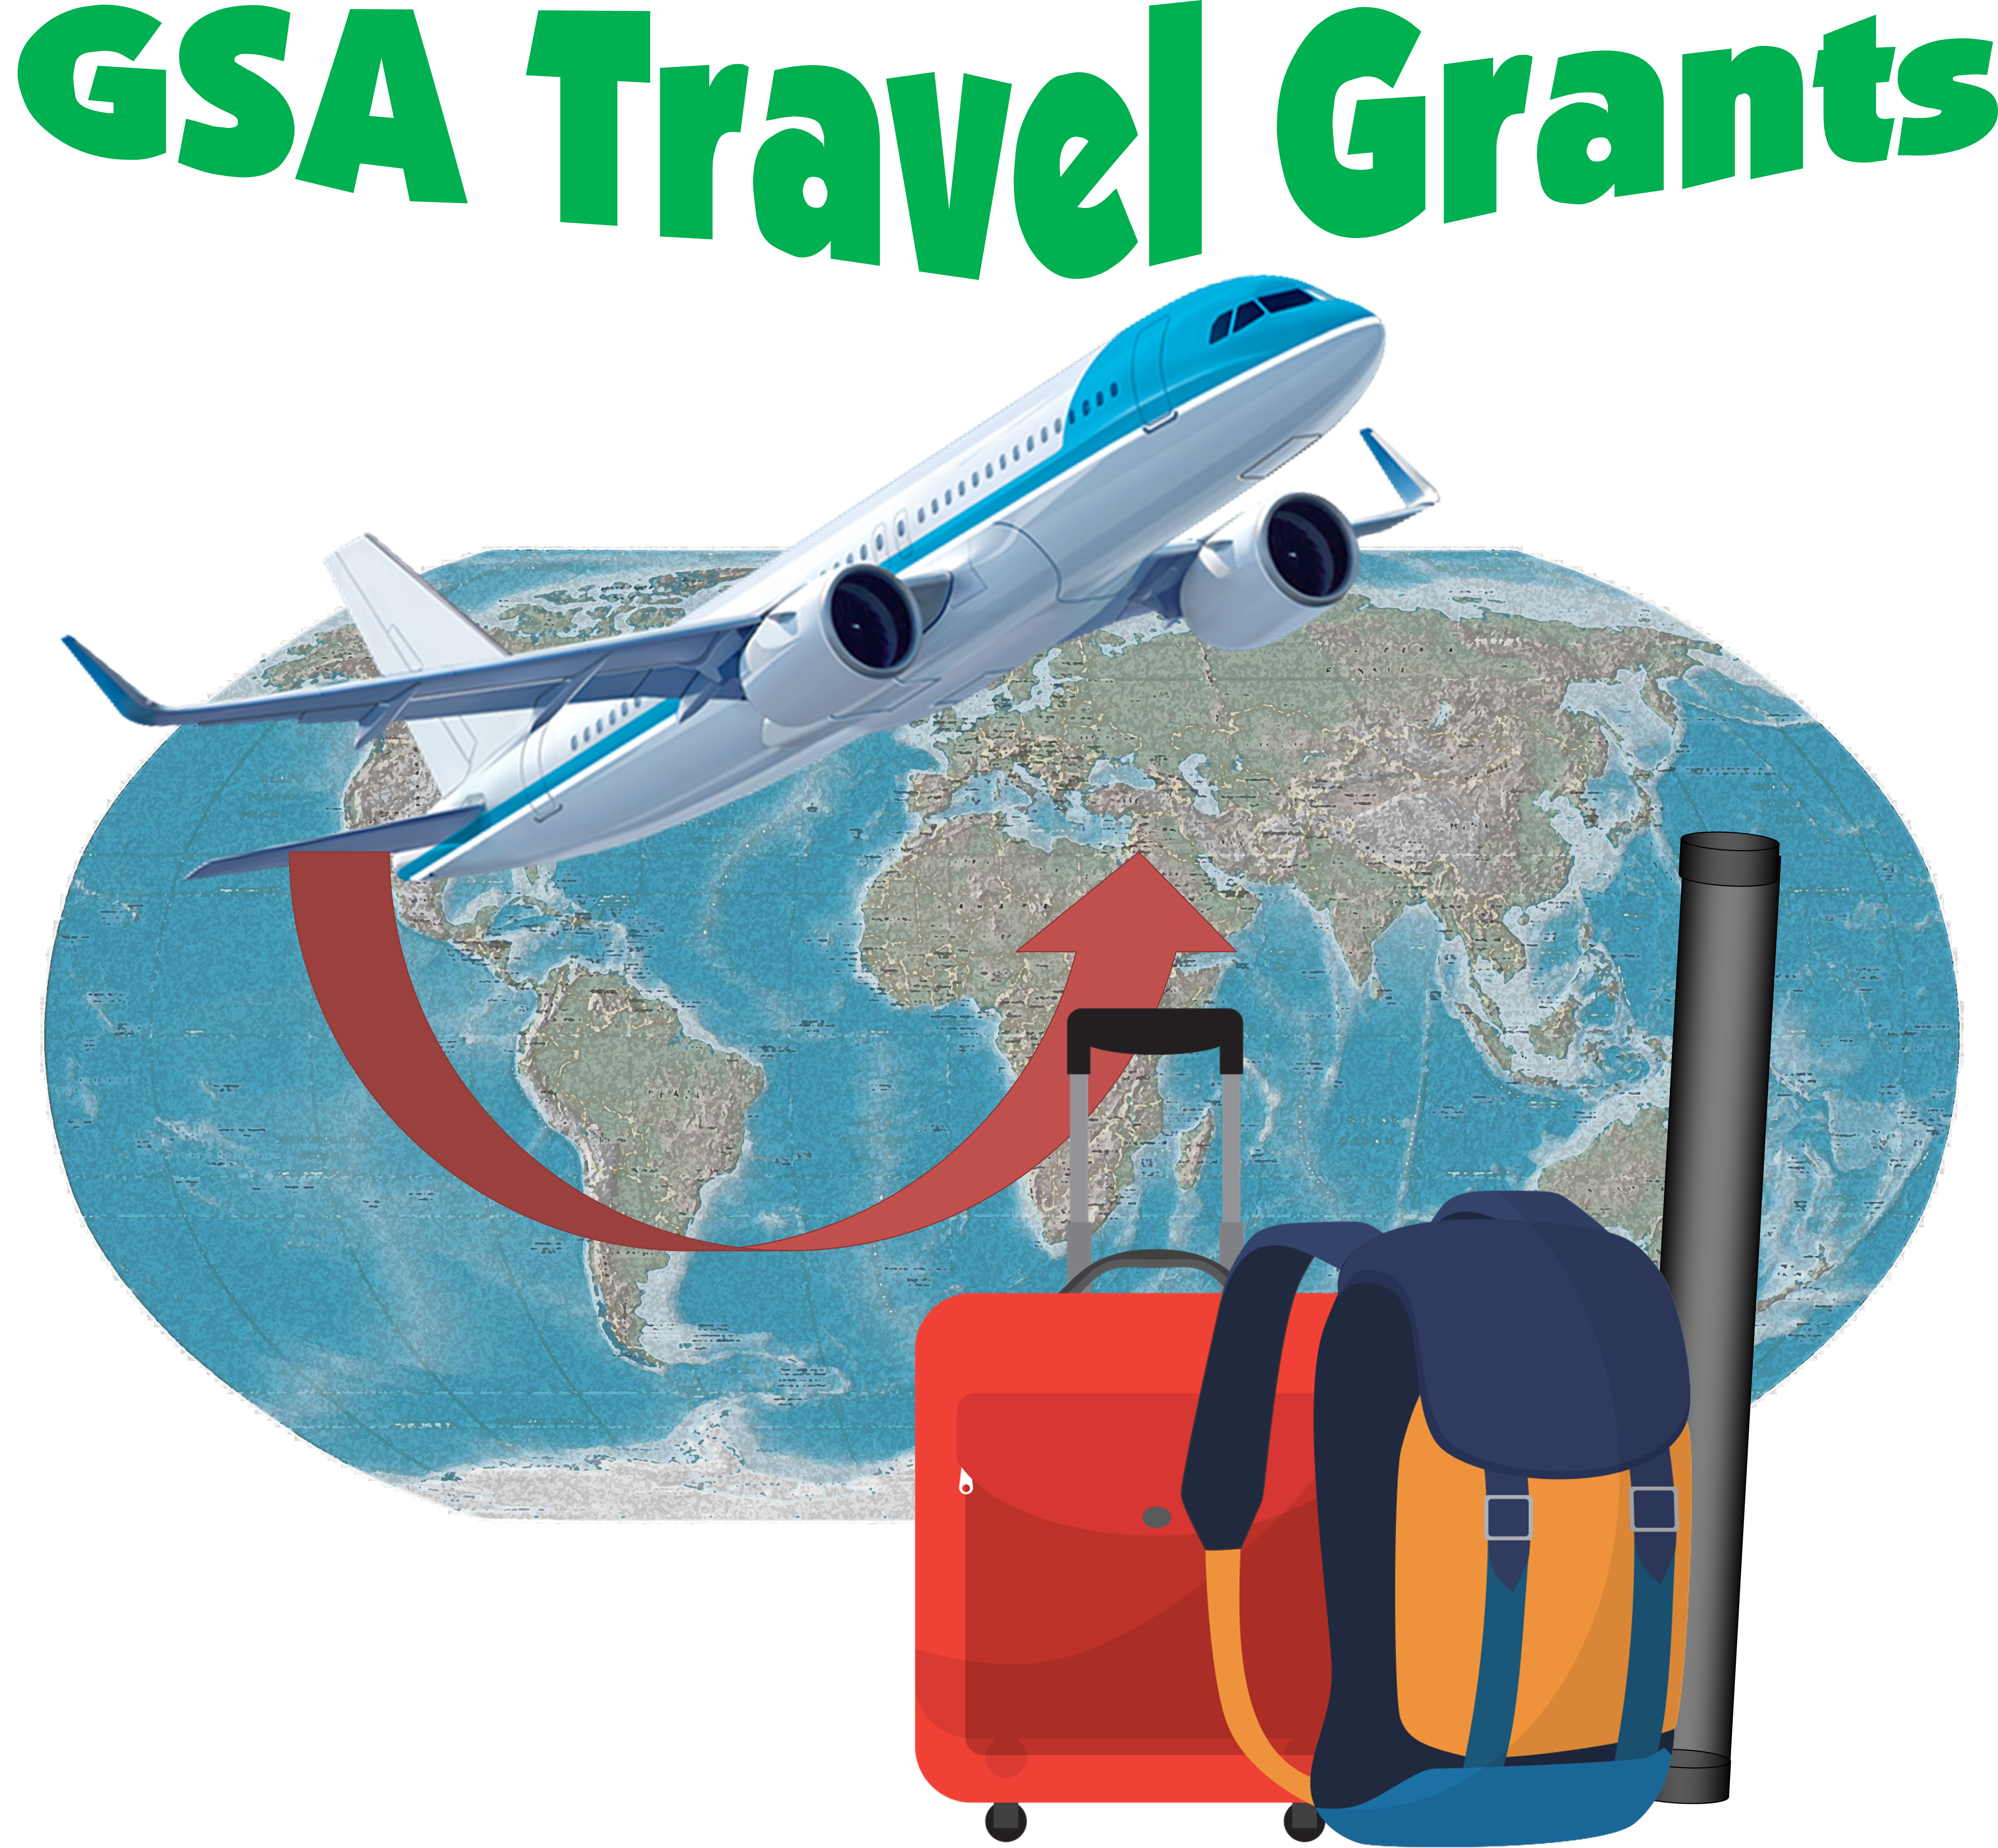 GSA Travel Grants